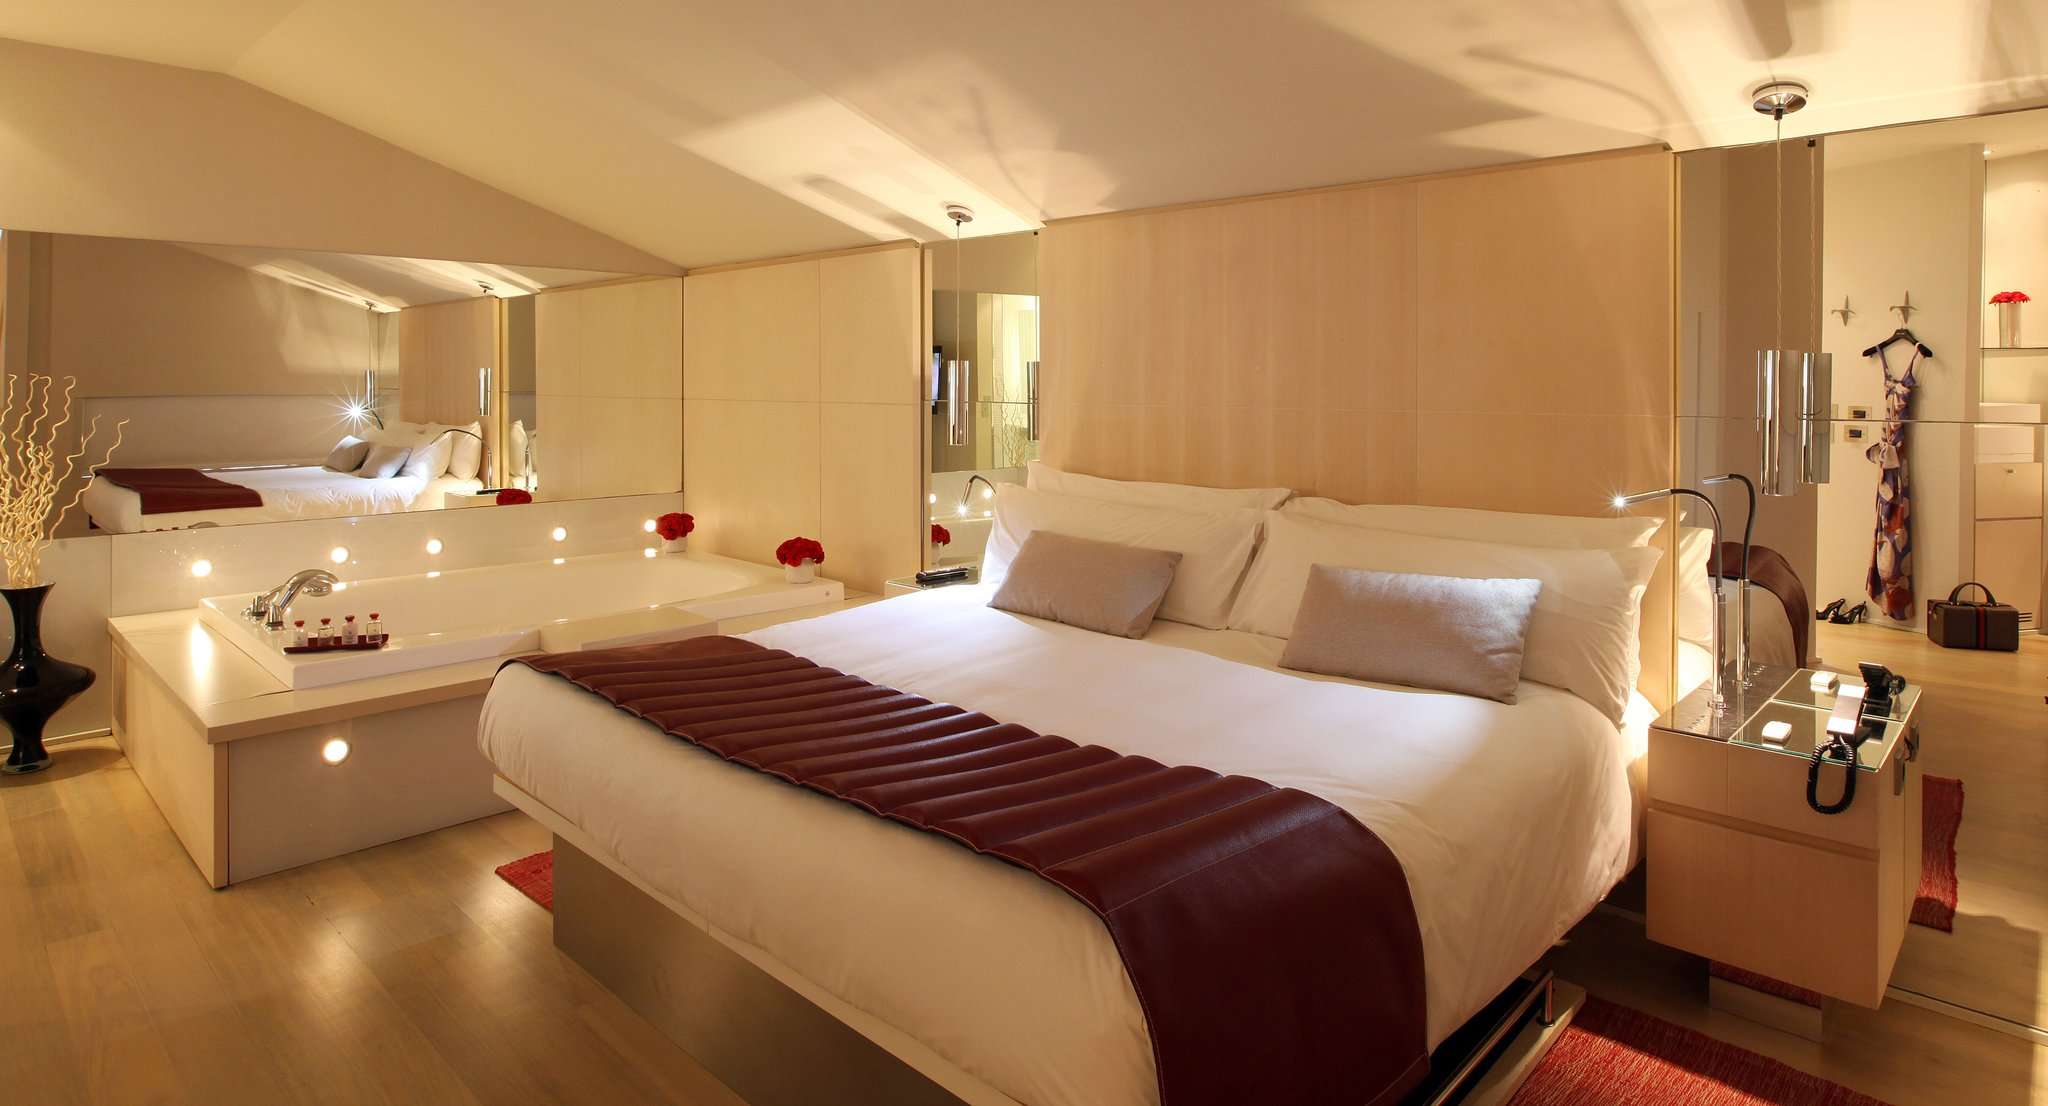 Modern and stylish hotel in spain hotel cram Habitacion hotel barcelona